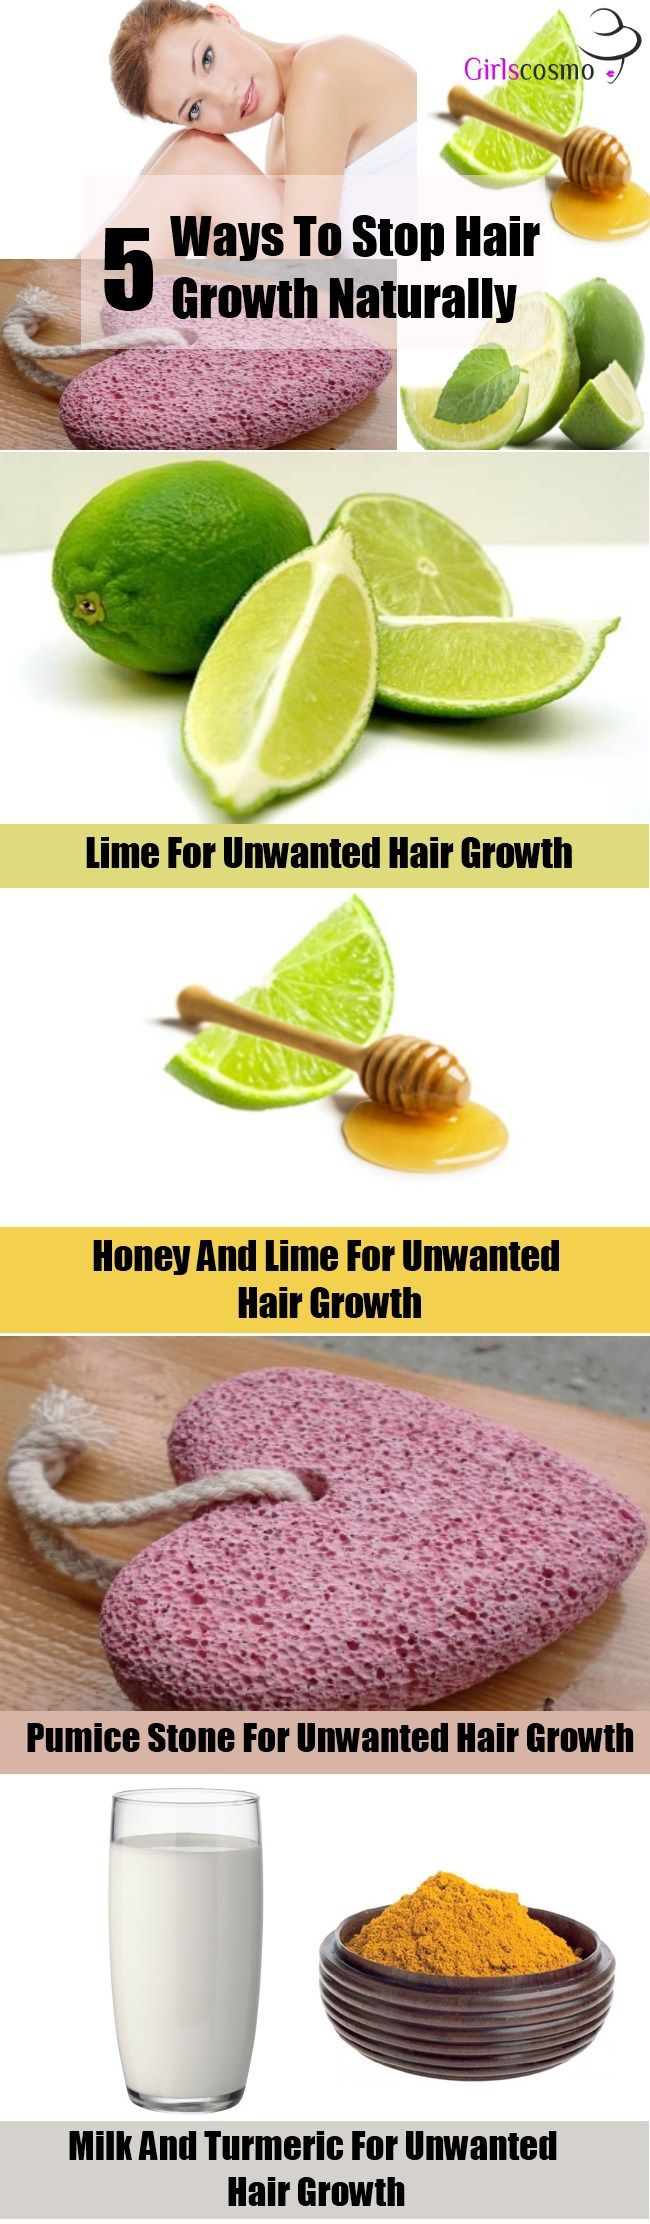 5 Ways To Stop Hair Growth Naturally